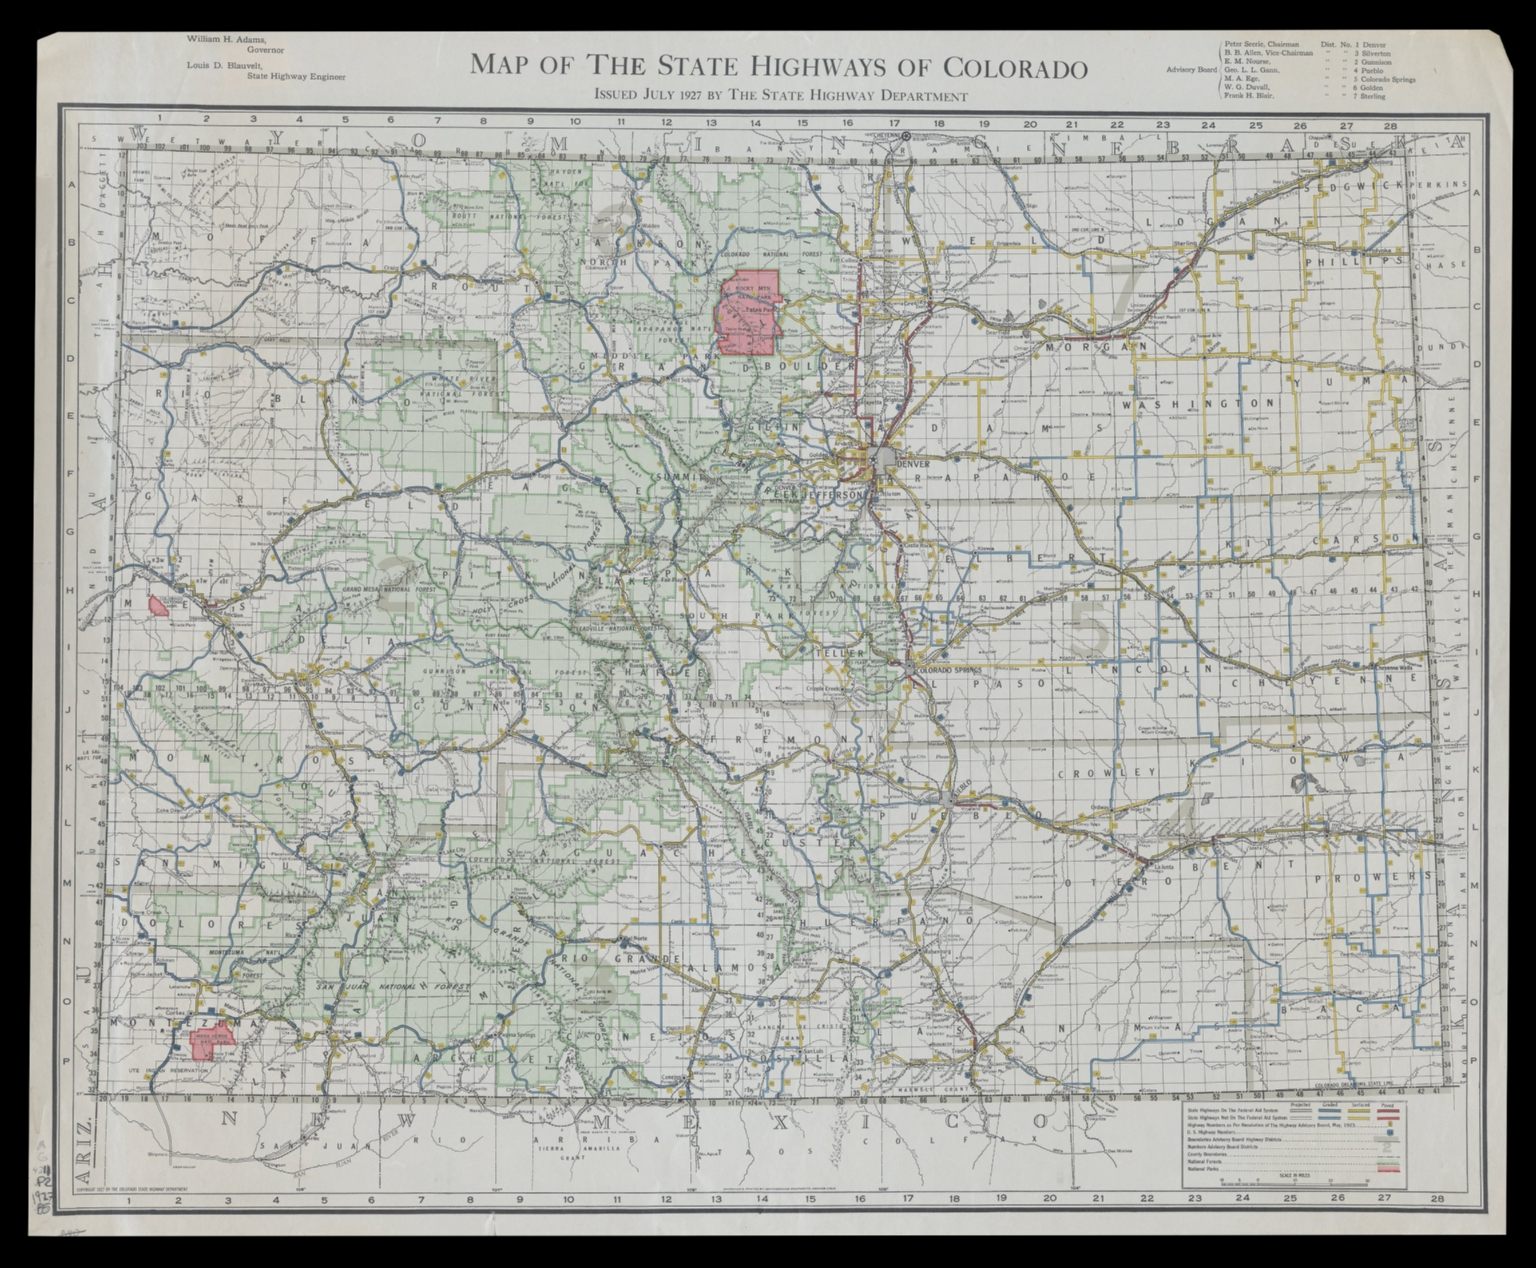 Map of the state highways of Colorado